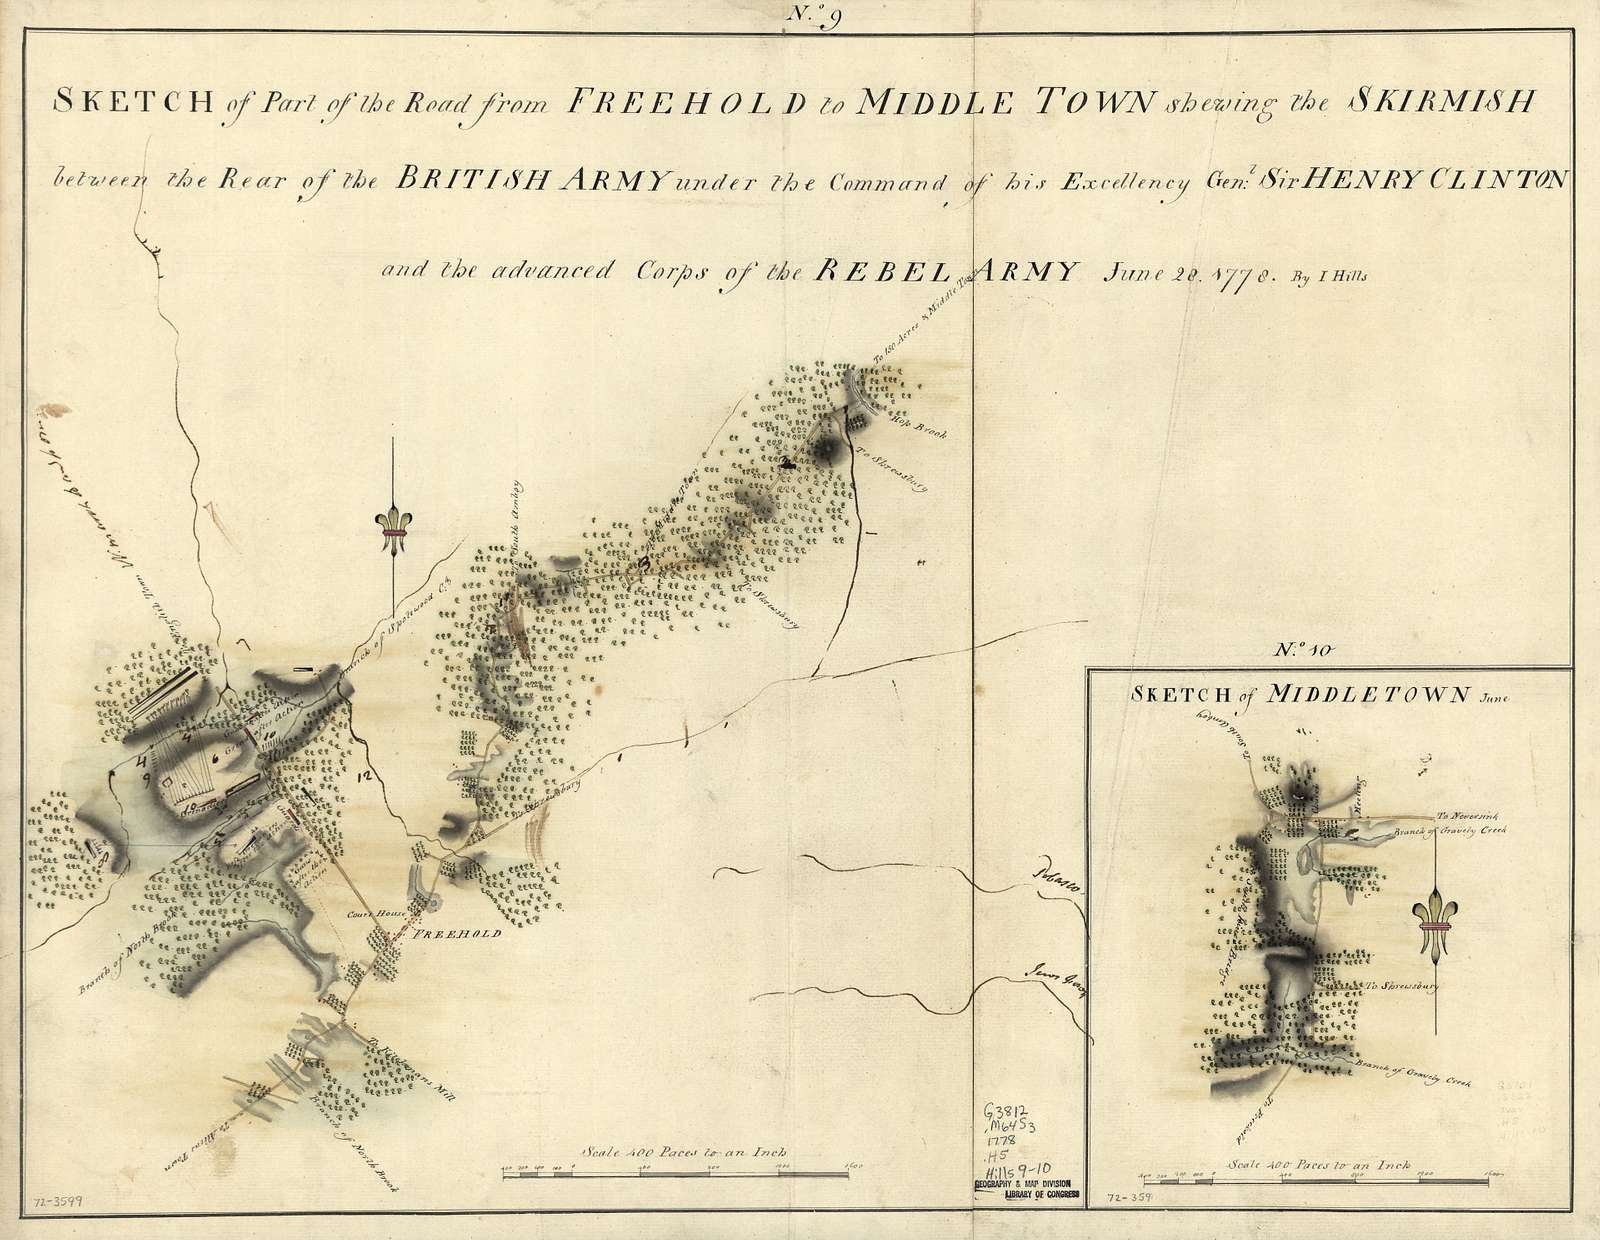 Sketch of part of the road from Freehold to Middle Town shewing the skirmish between the rear of the British Army under the command of His Excellency Genl: Sir Henry Clinton and the advance corps of the rebel army, June 28, 1778,